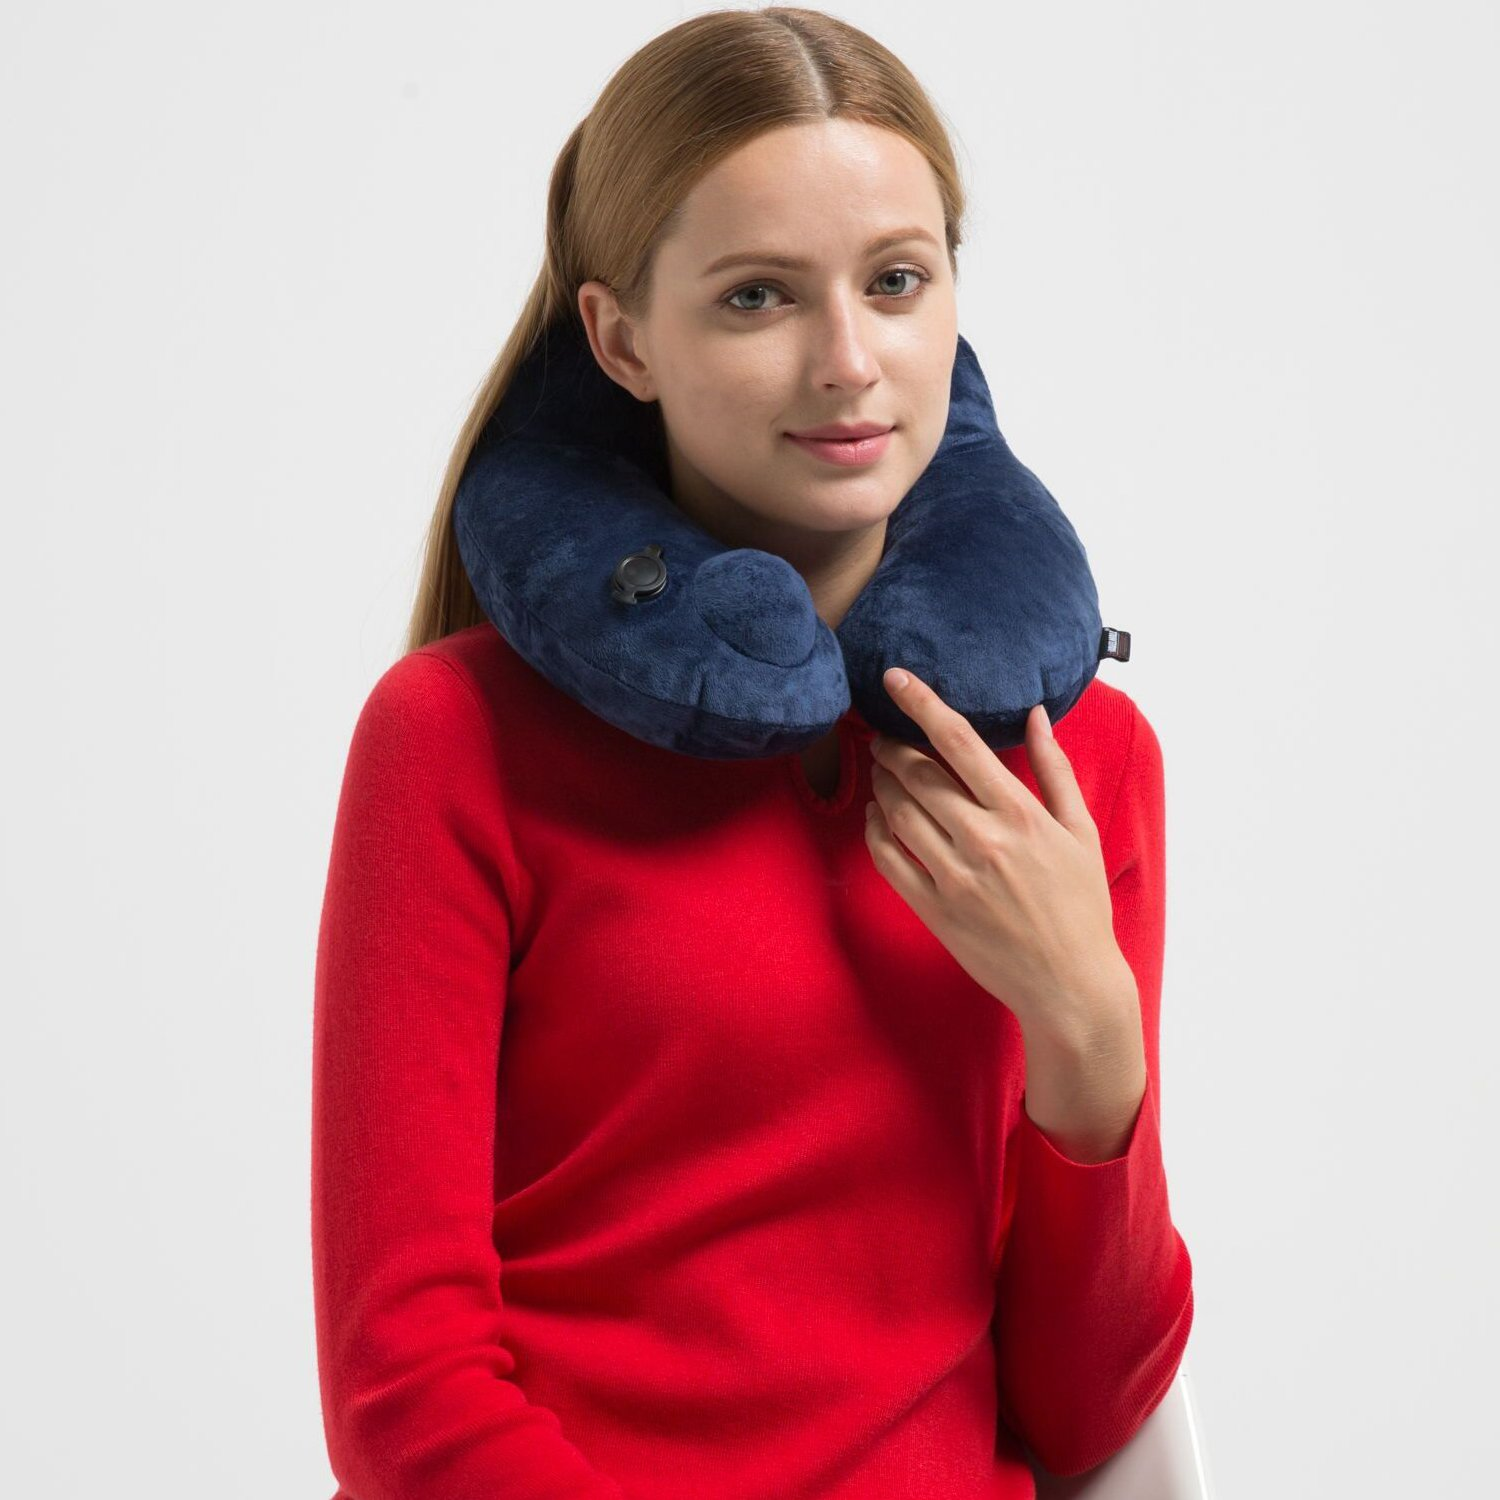 Metene Soft Velvet Inflatable Neck Support Travel Pillows for Airplanes with Portable Carrying Bag